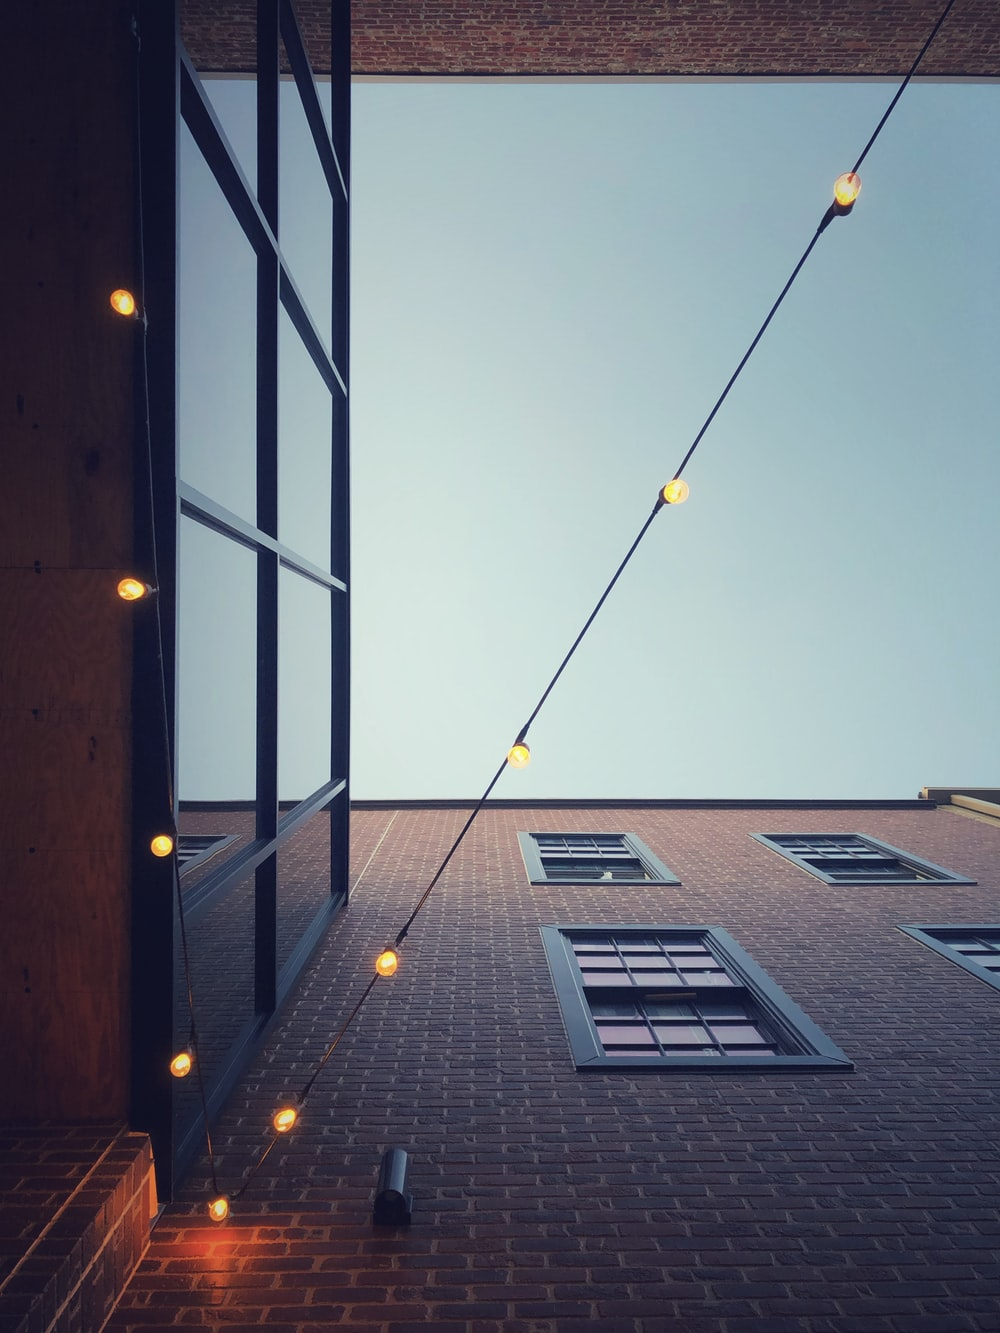 low-angle photography of turned on yellow string lights hanging on buildings